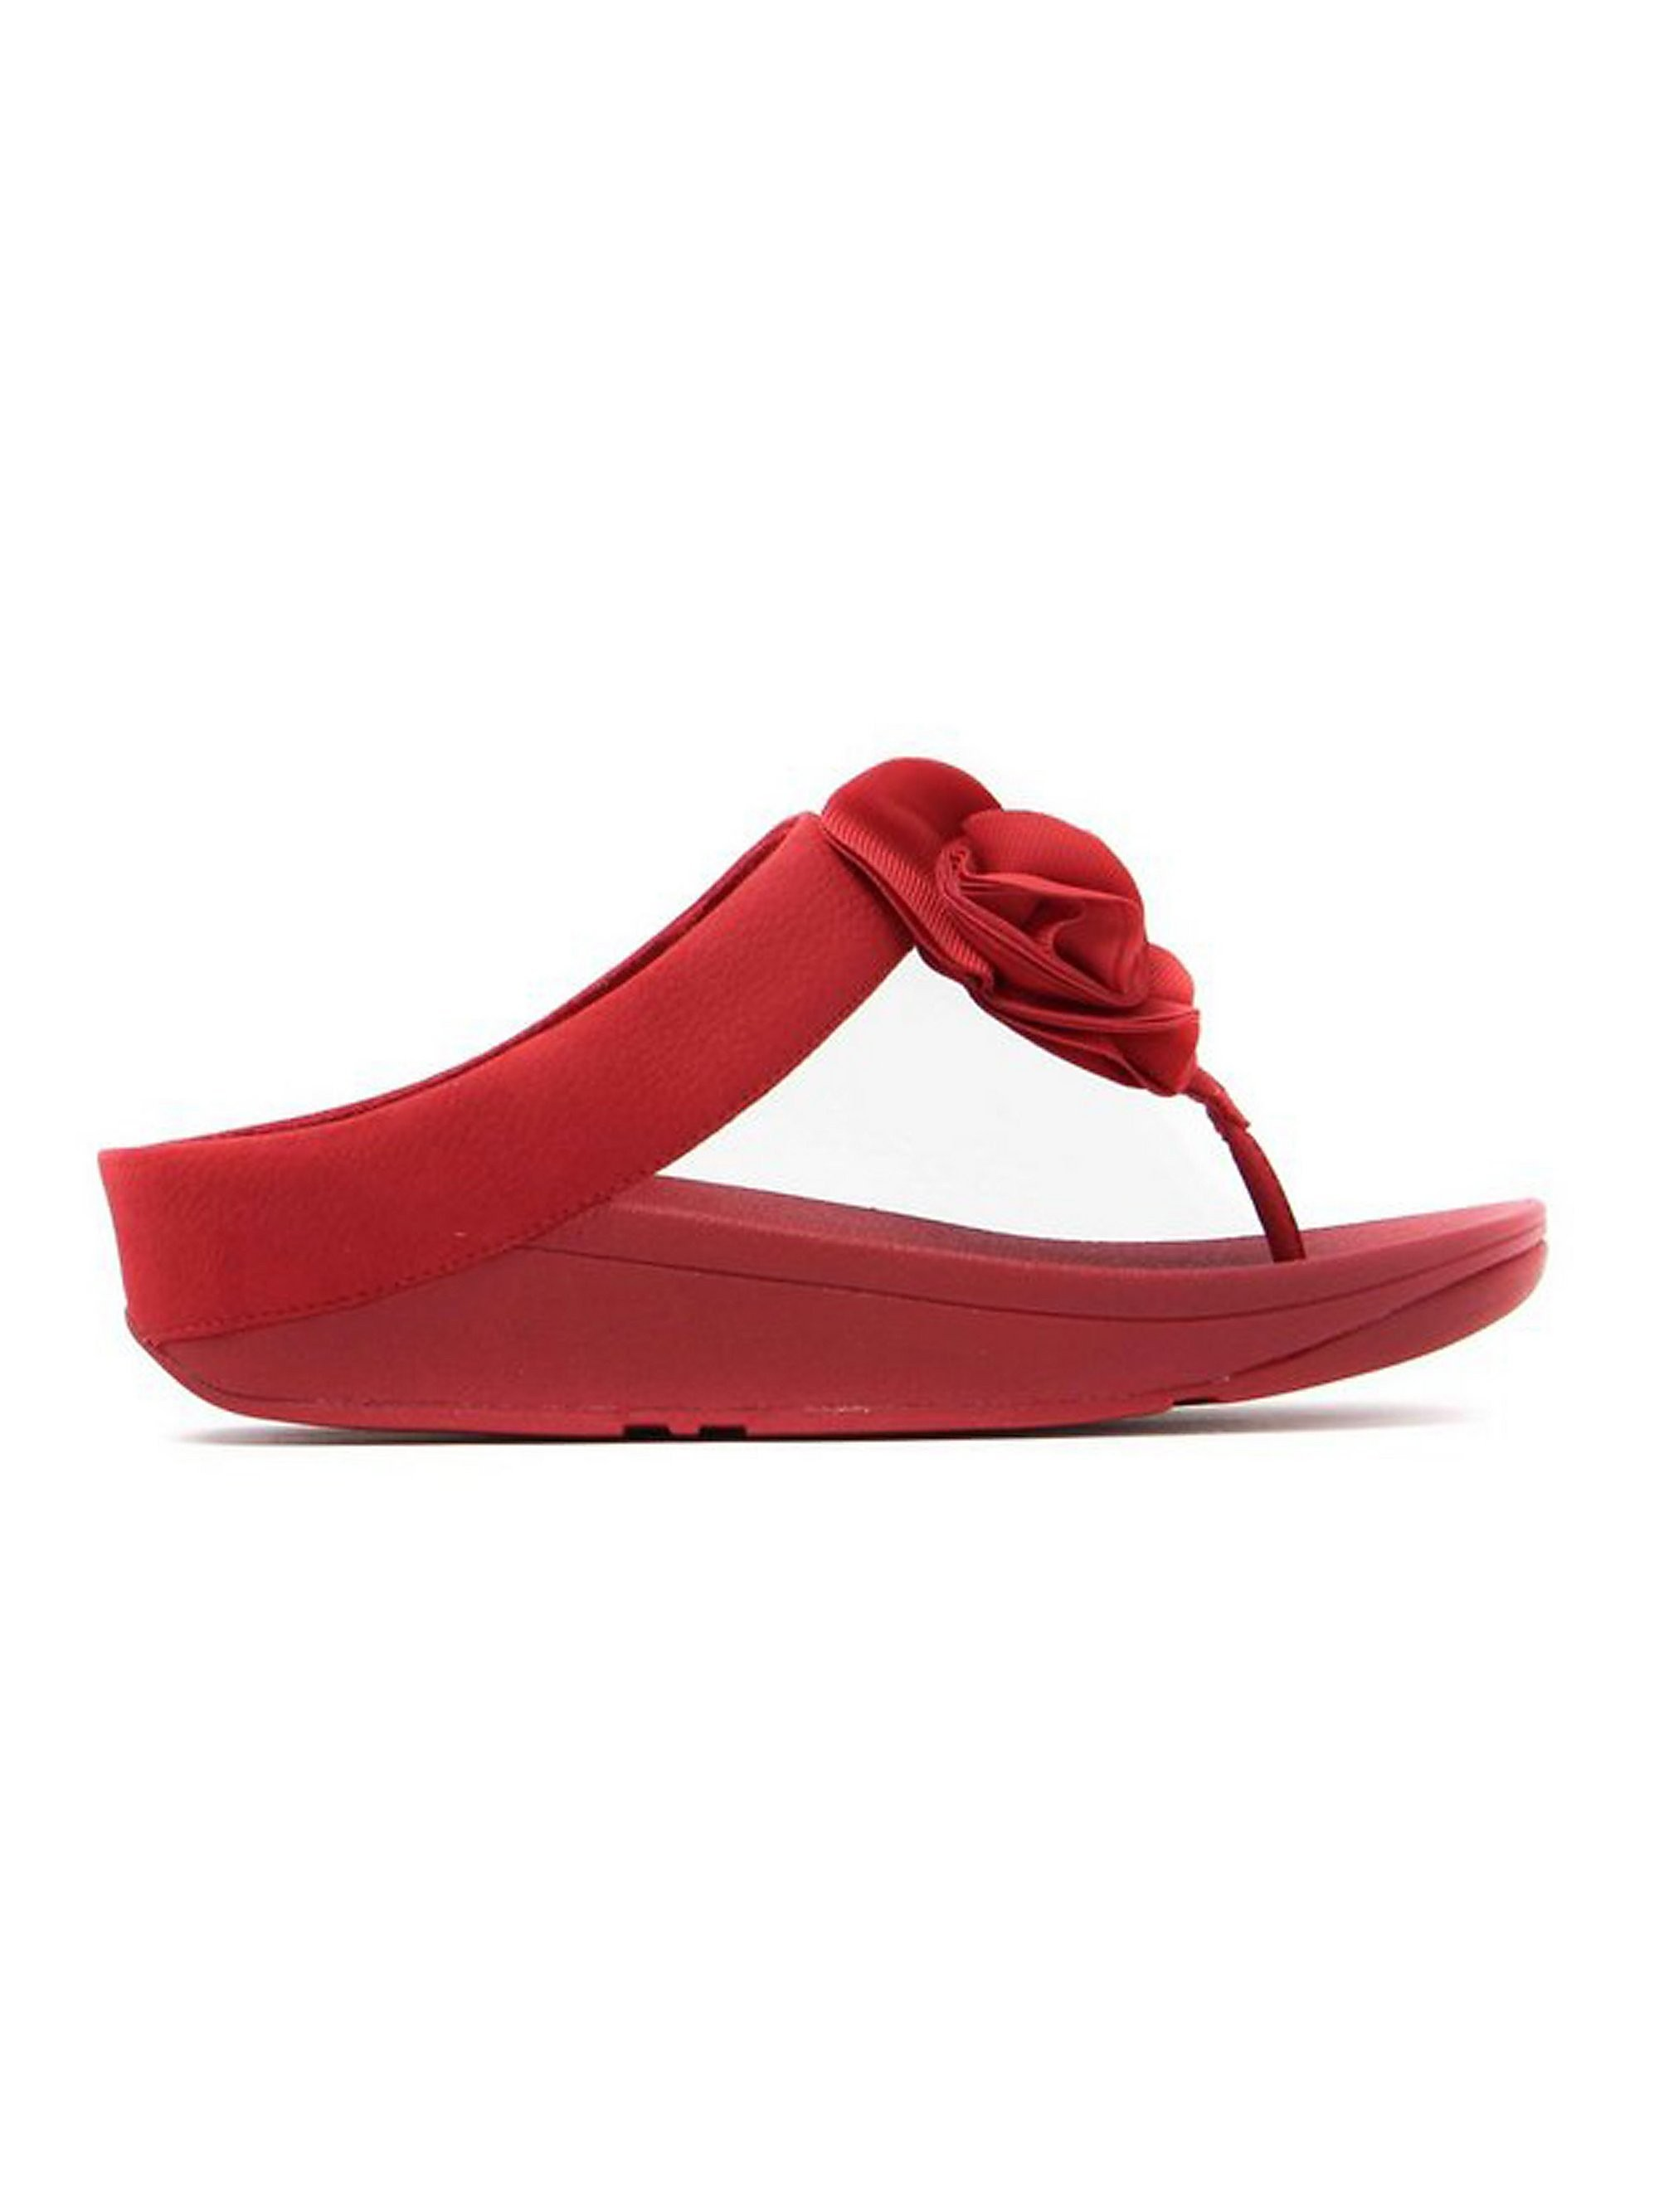 FitFlop Women's Florrie Toe-Post Sandals - Red